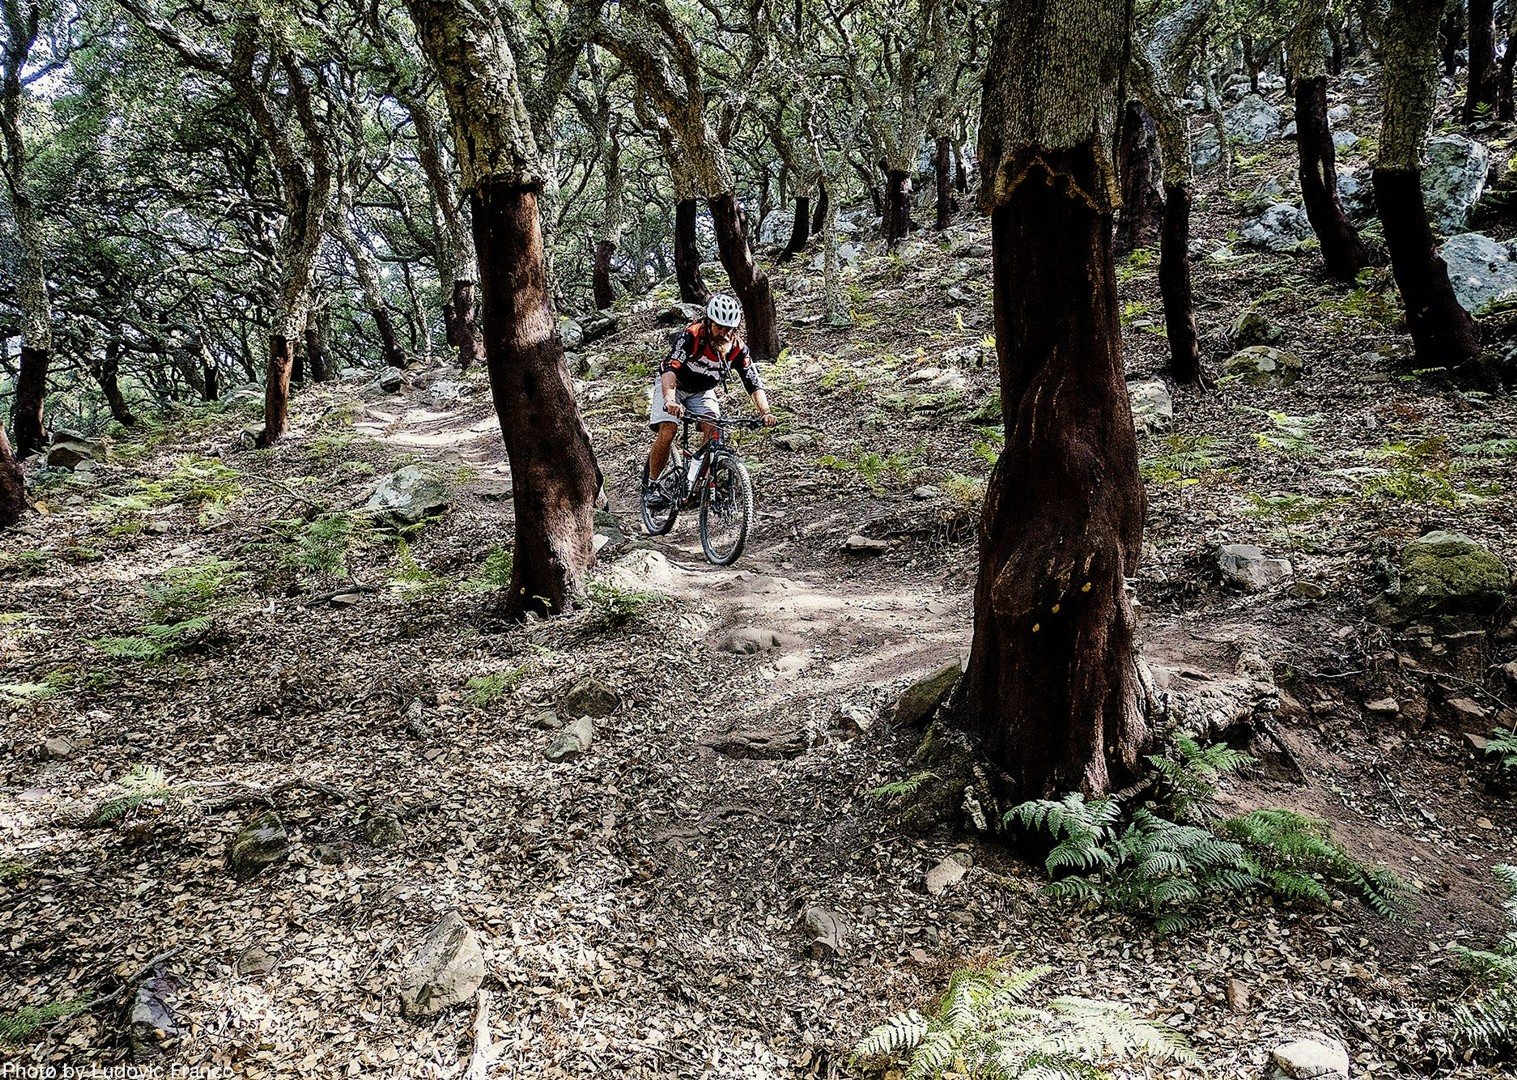 tricky-singletrack-spain-skilled-tour-andalucia-skedaddle.jpg - Spain - Awesome Andalucia - Guided Mountain Bike Holiday - Mountain Biking